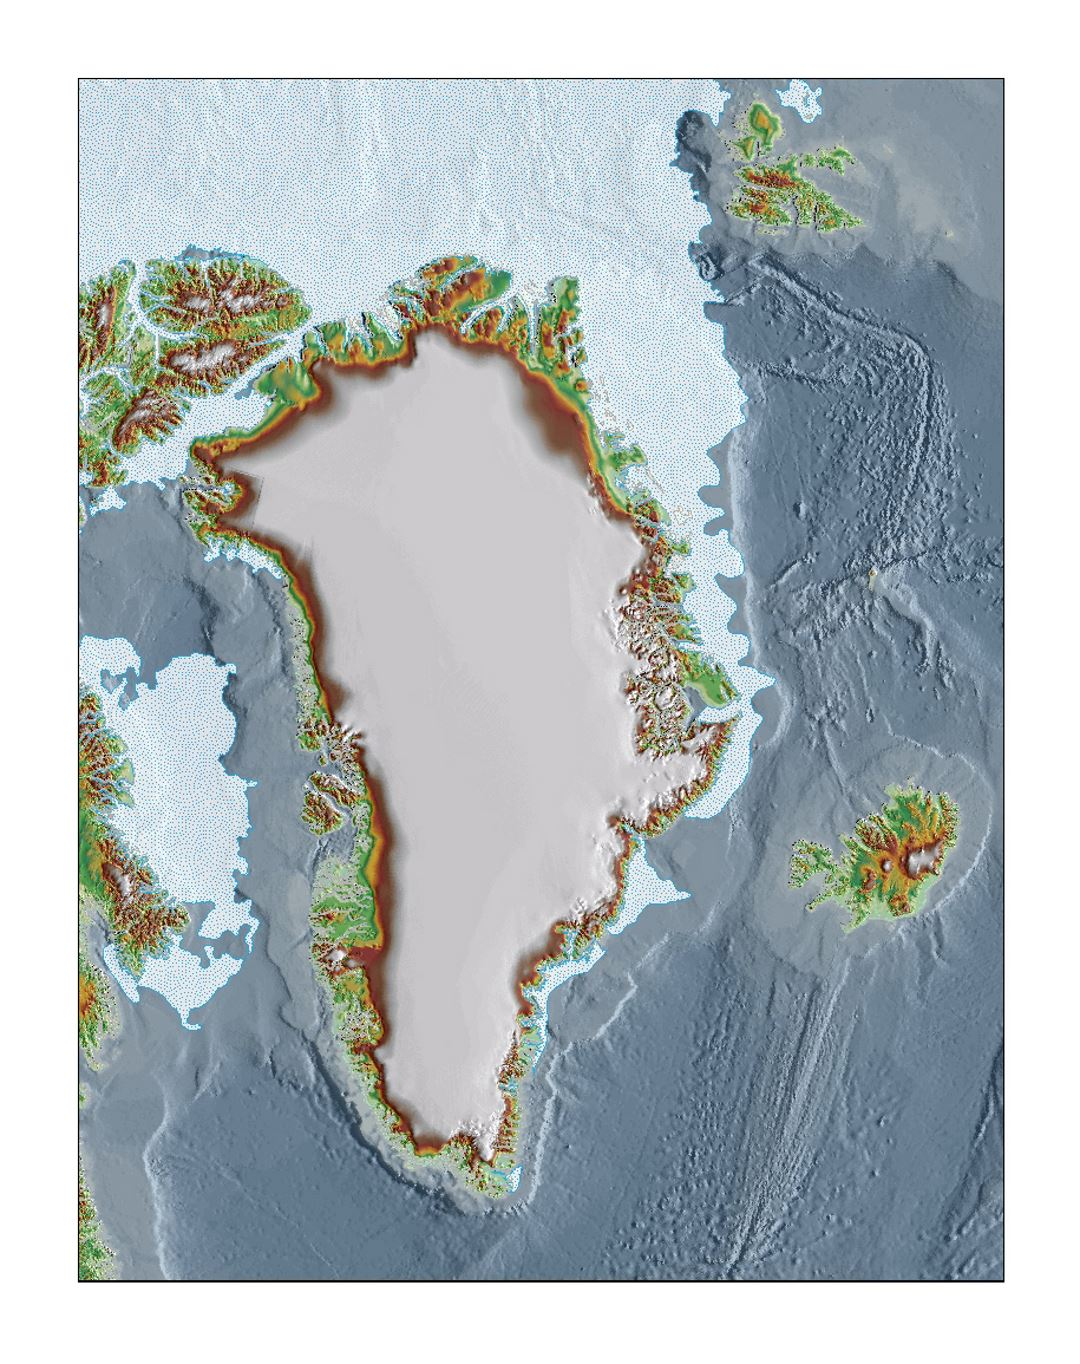 Topographic base map of Greenland